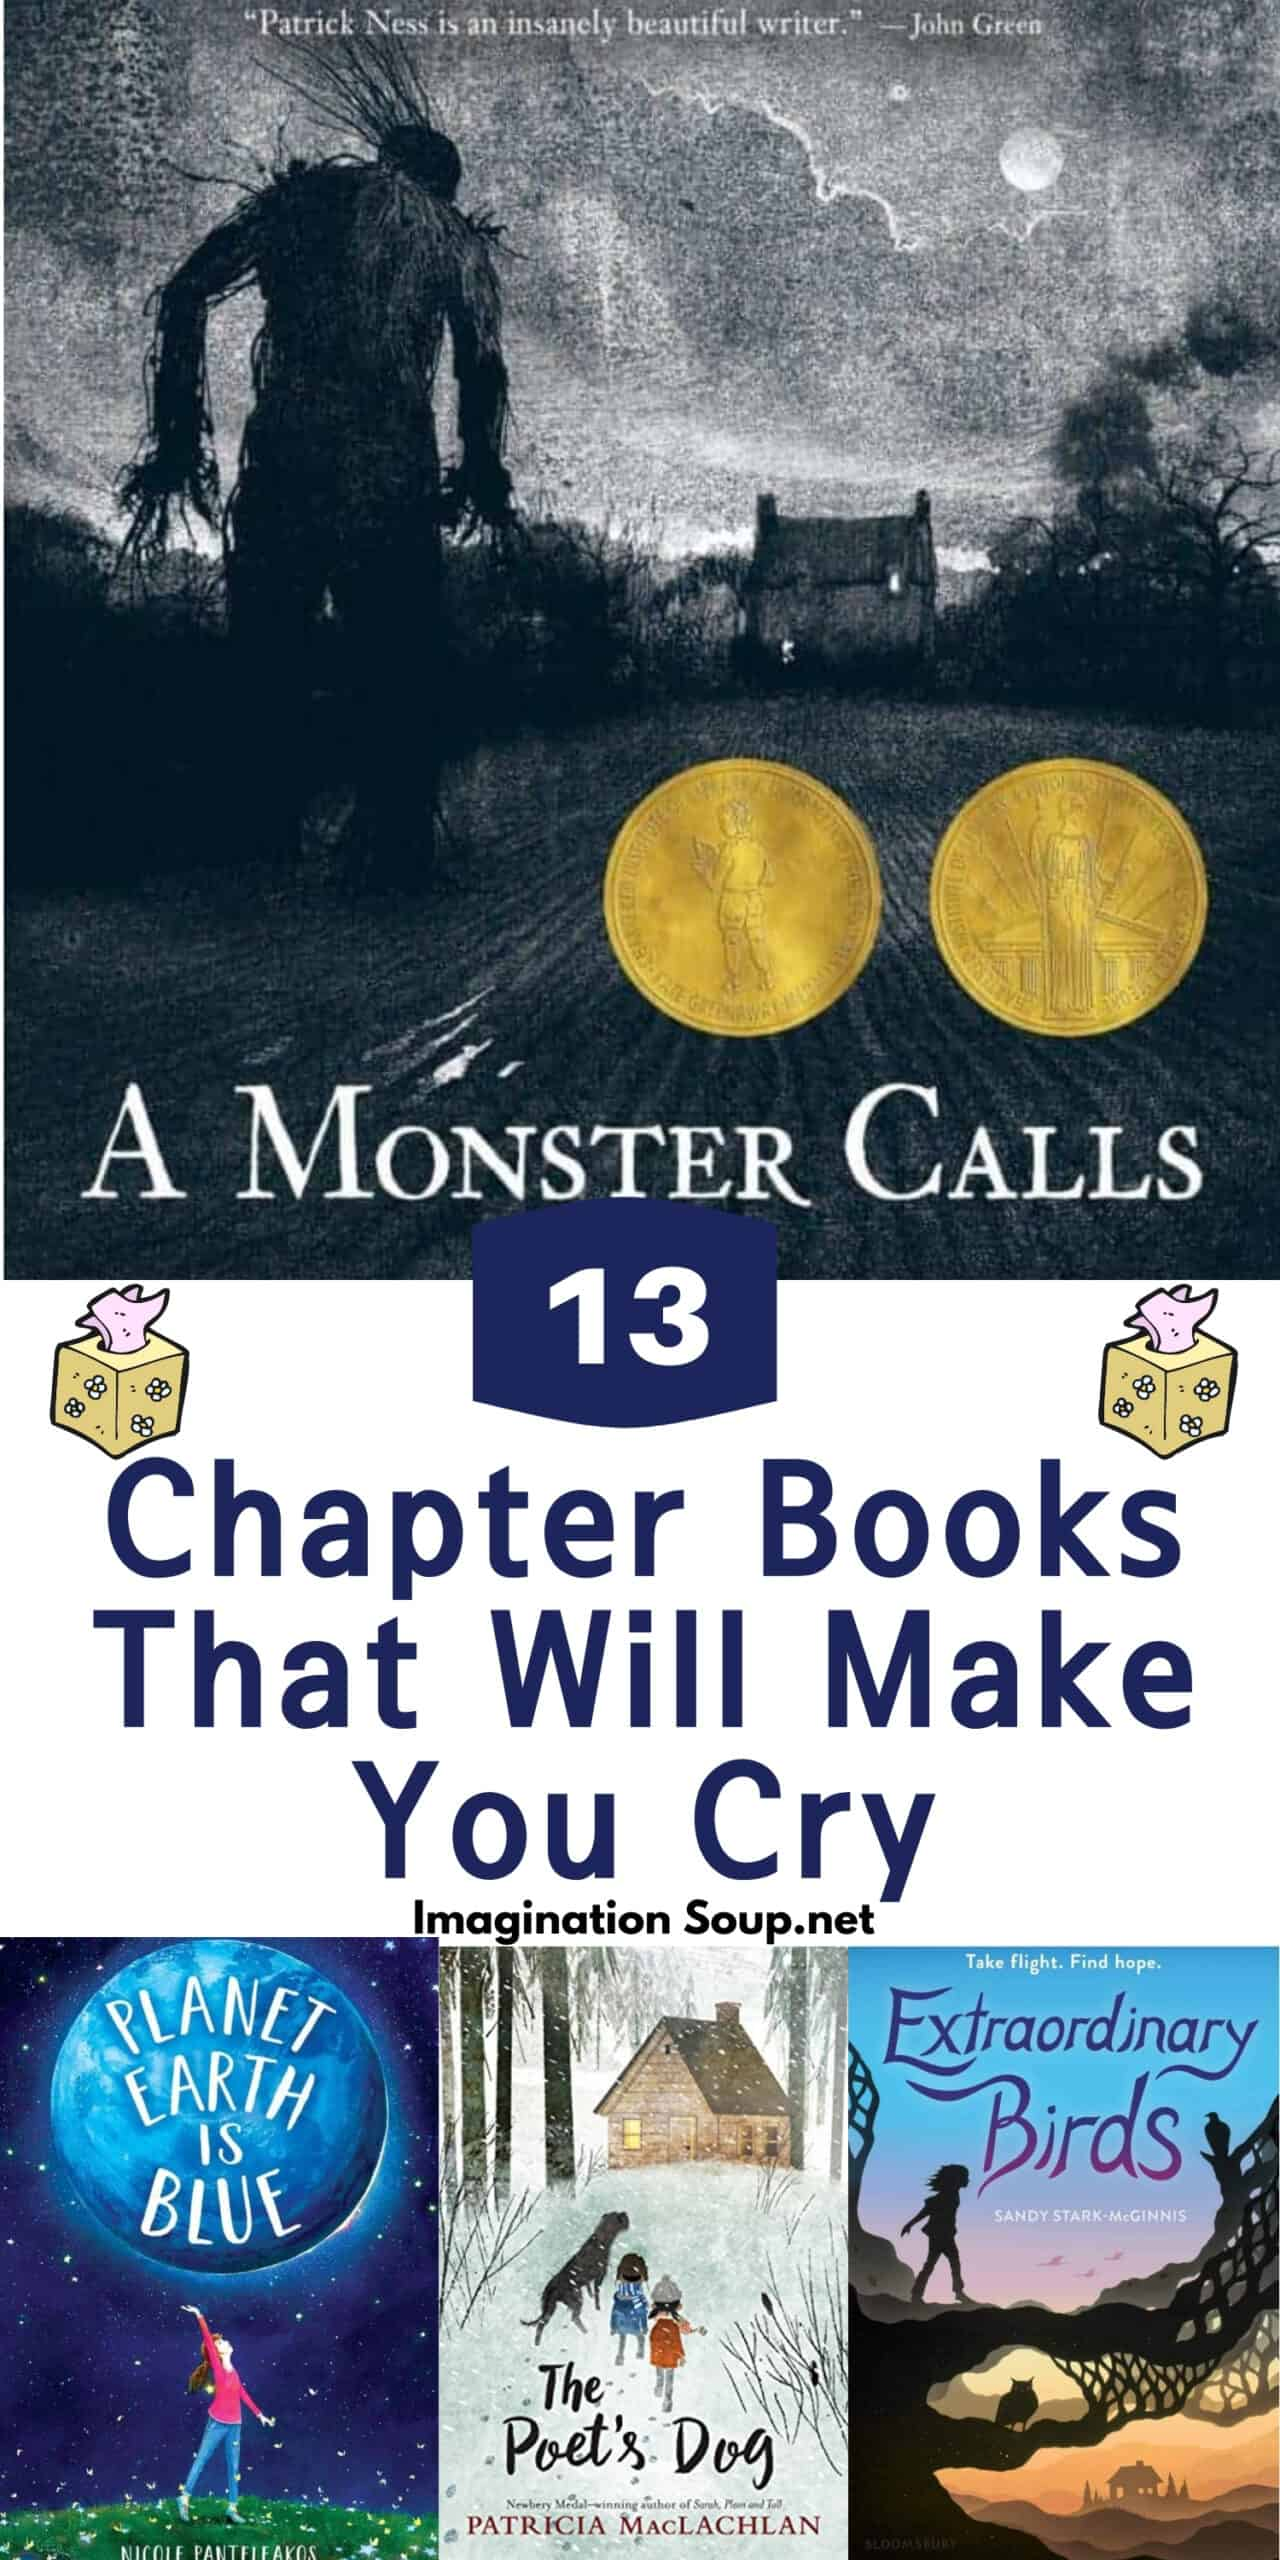 Chapter Books That Will Make You Cry